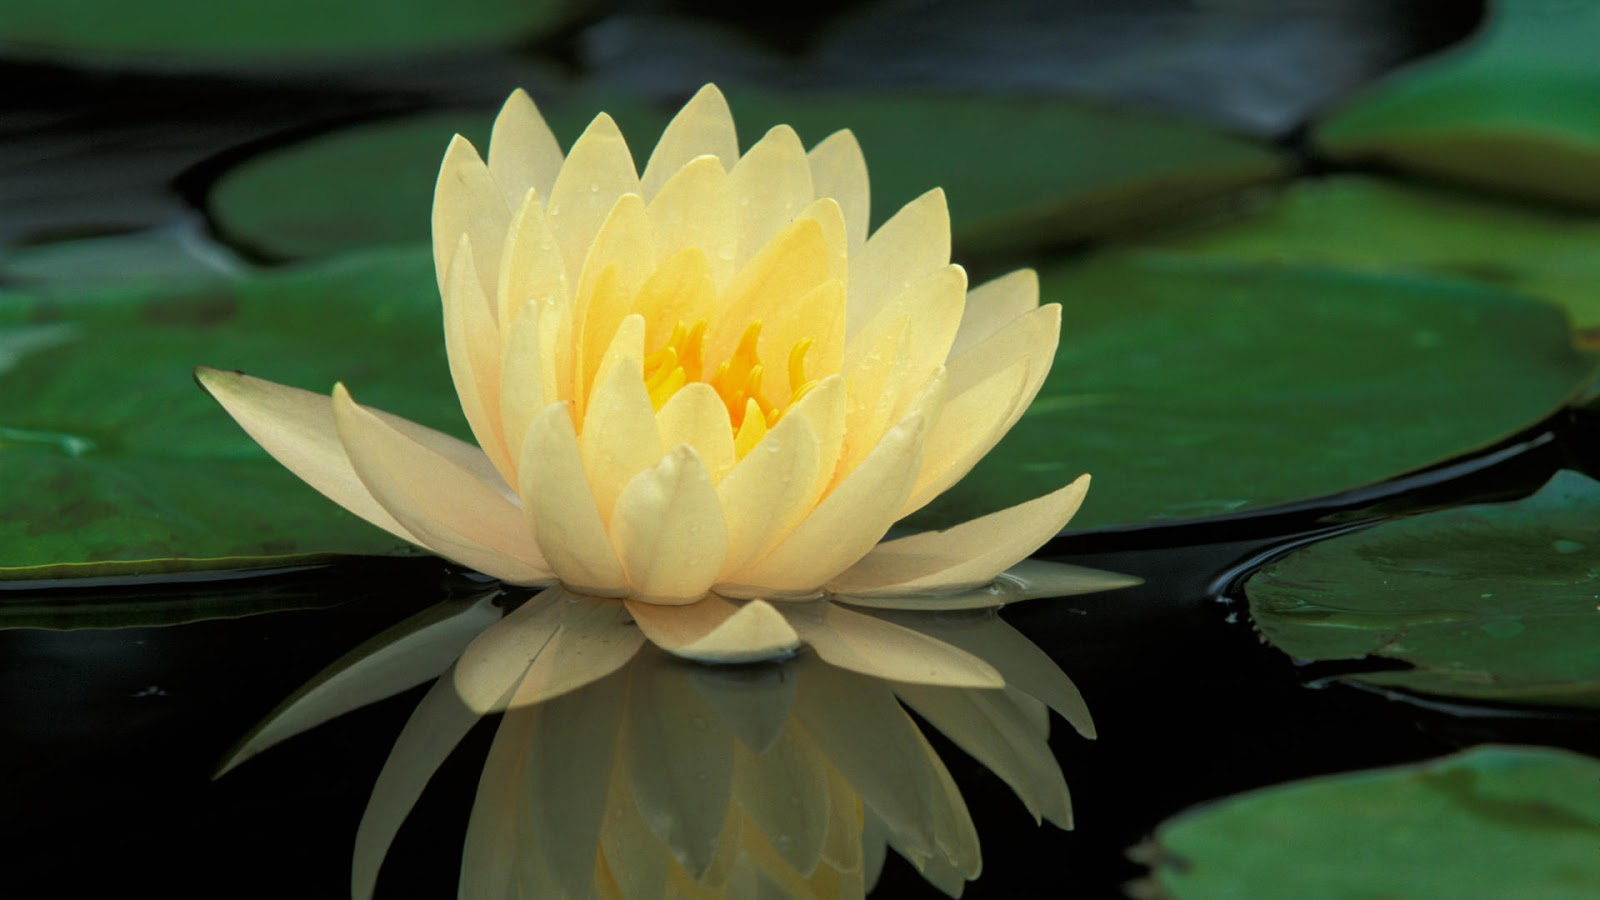 No mud no lotus sntatea ca expresie a armoniei without mud you cannot have a lotus flower without suffering you have no ways in order to learn how to be understanding and compassionate izmirmasajfo